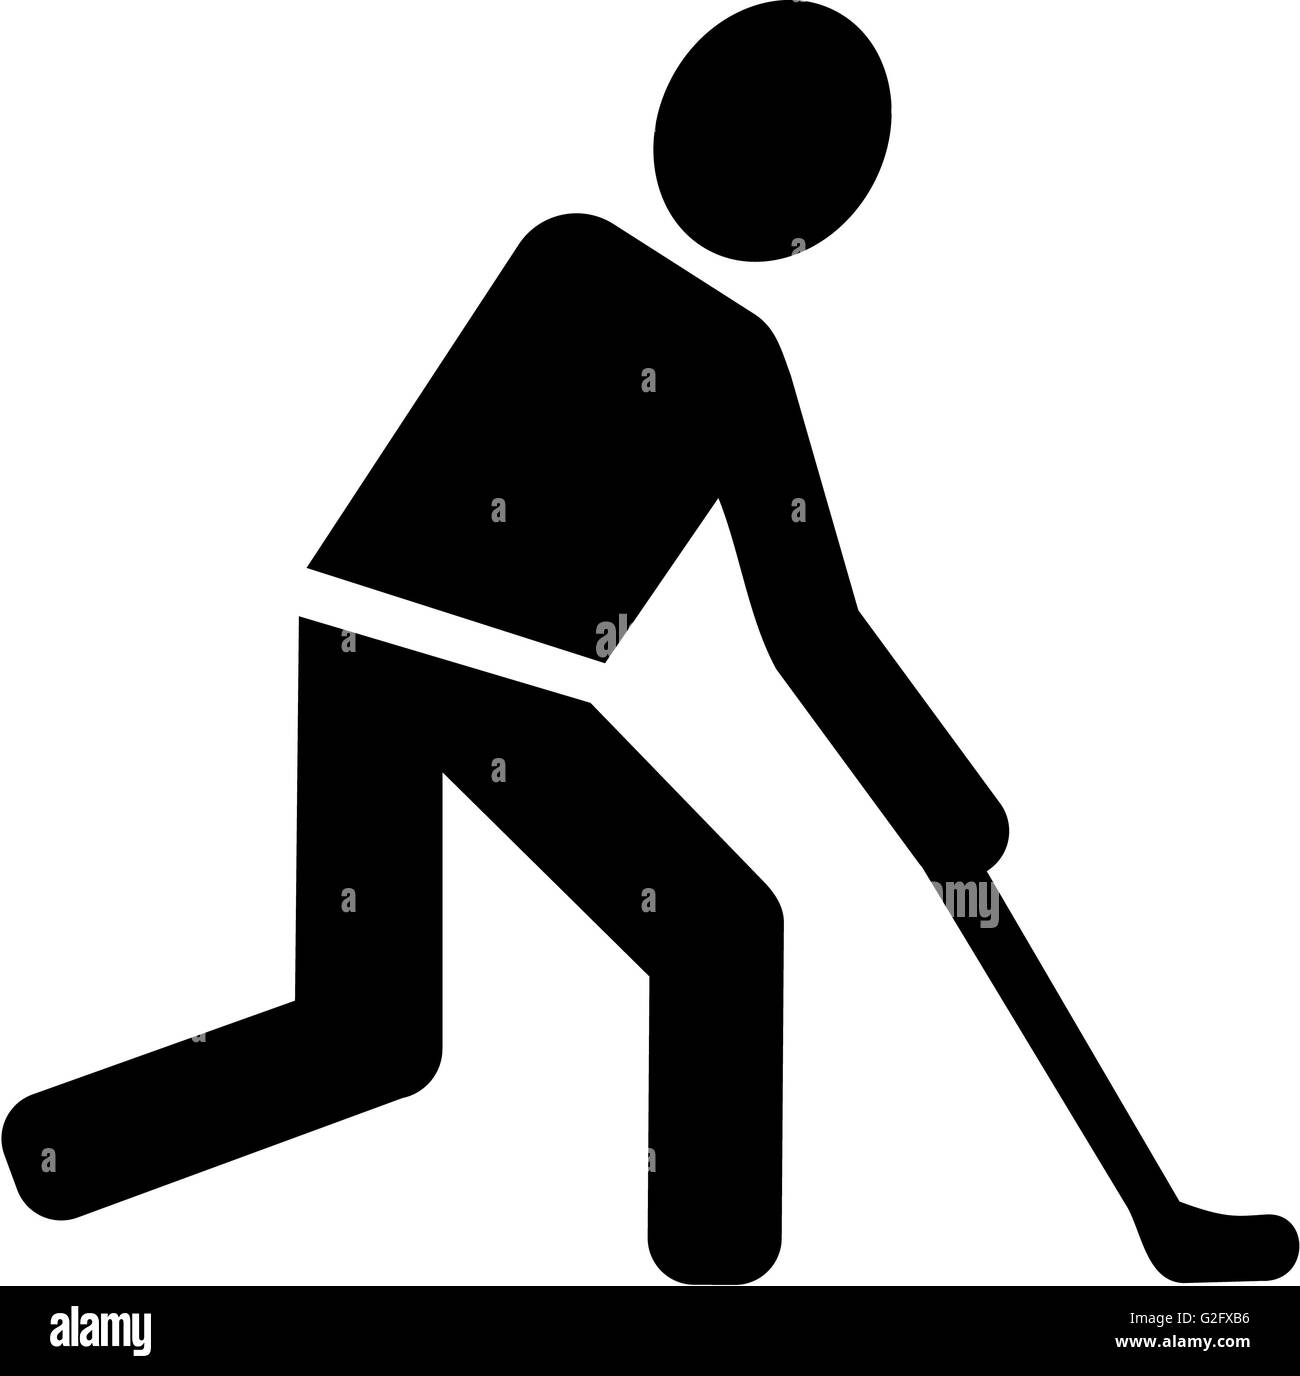 Field hockey pictogram stock photo 104841498 alamy field hockey pictogram biocorpaavc Image collections